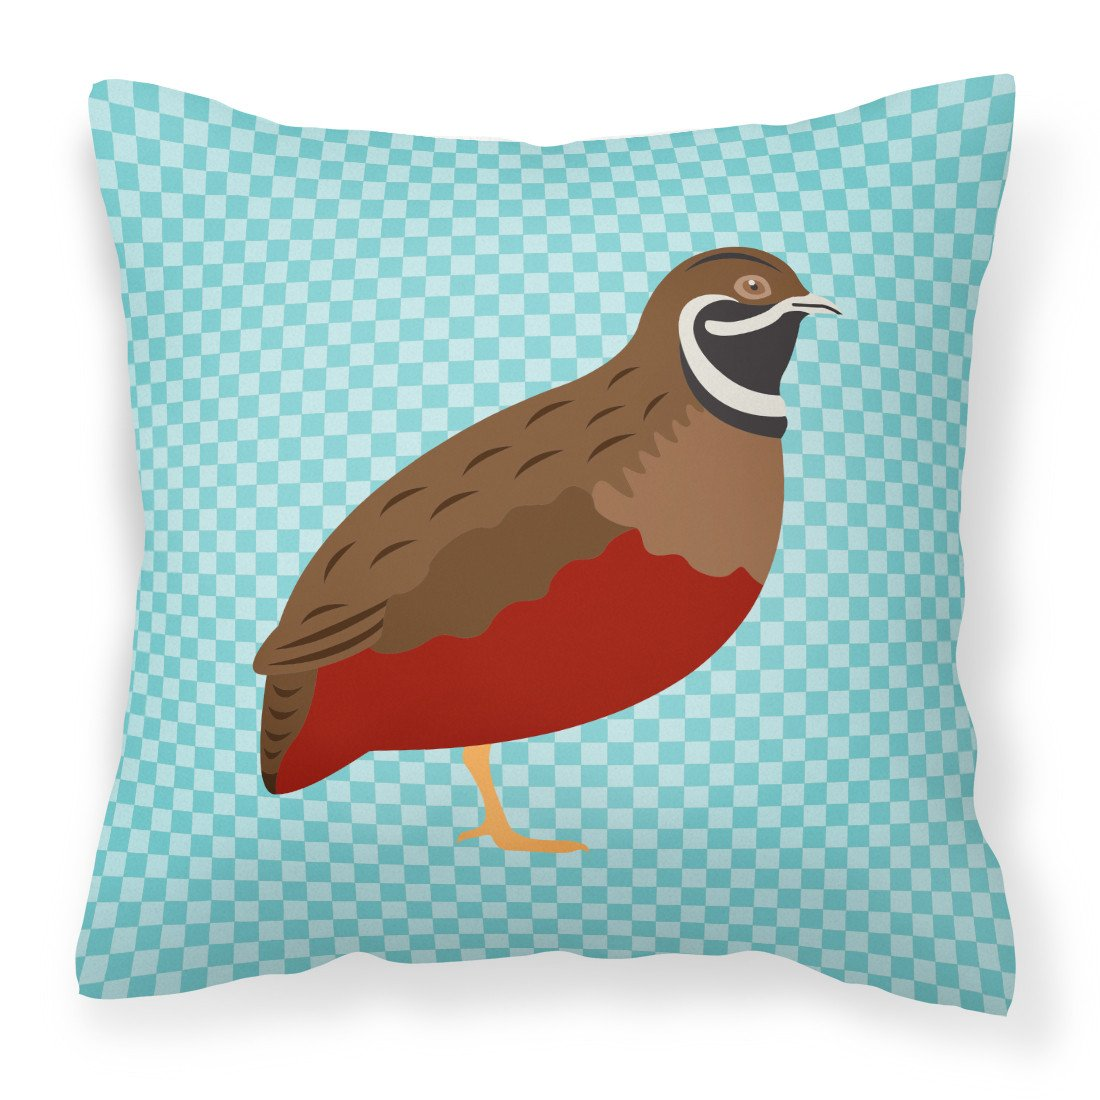 Chinese Painted or King Quail Blue Check Fabric Decorative Pillow BB8130PW1818 by Caroline's Treasures